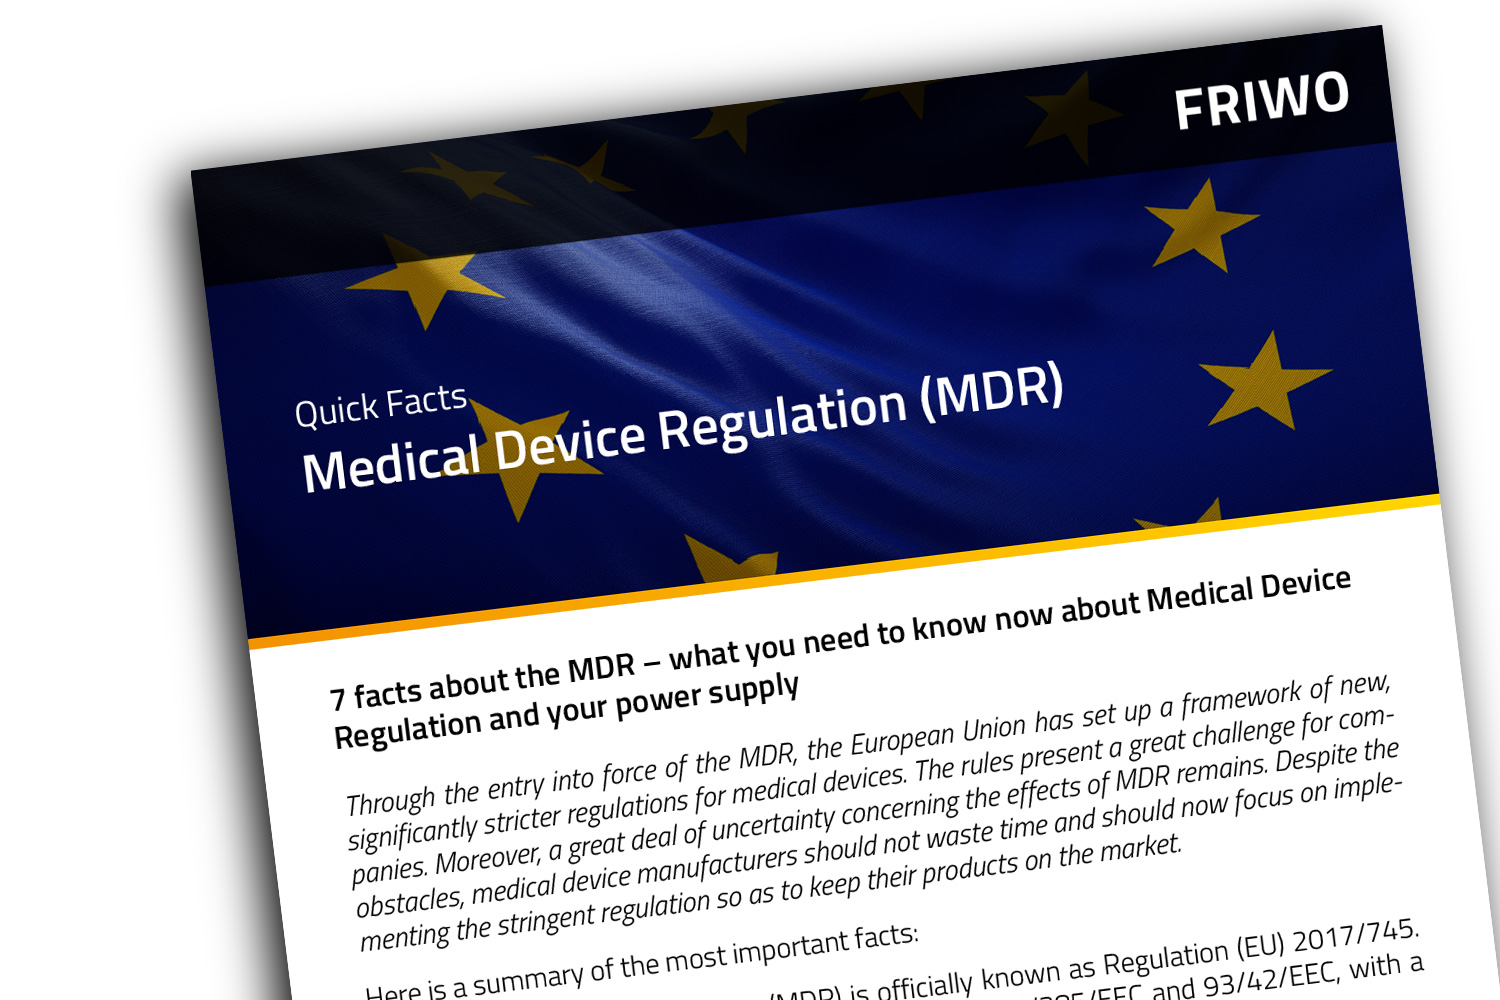 Quick Facts about the Medical Device Regulation